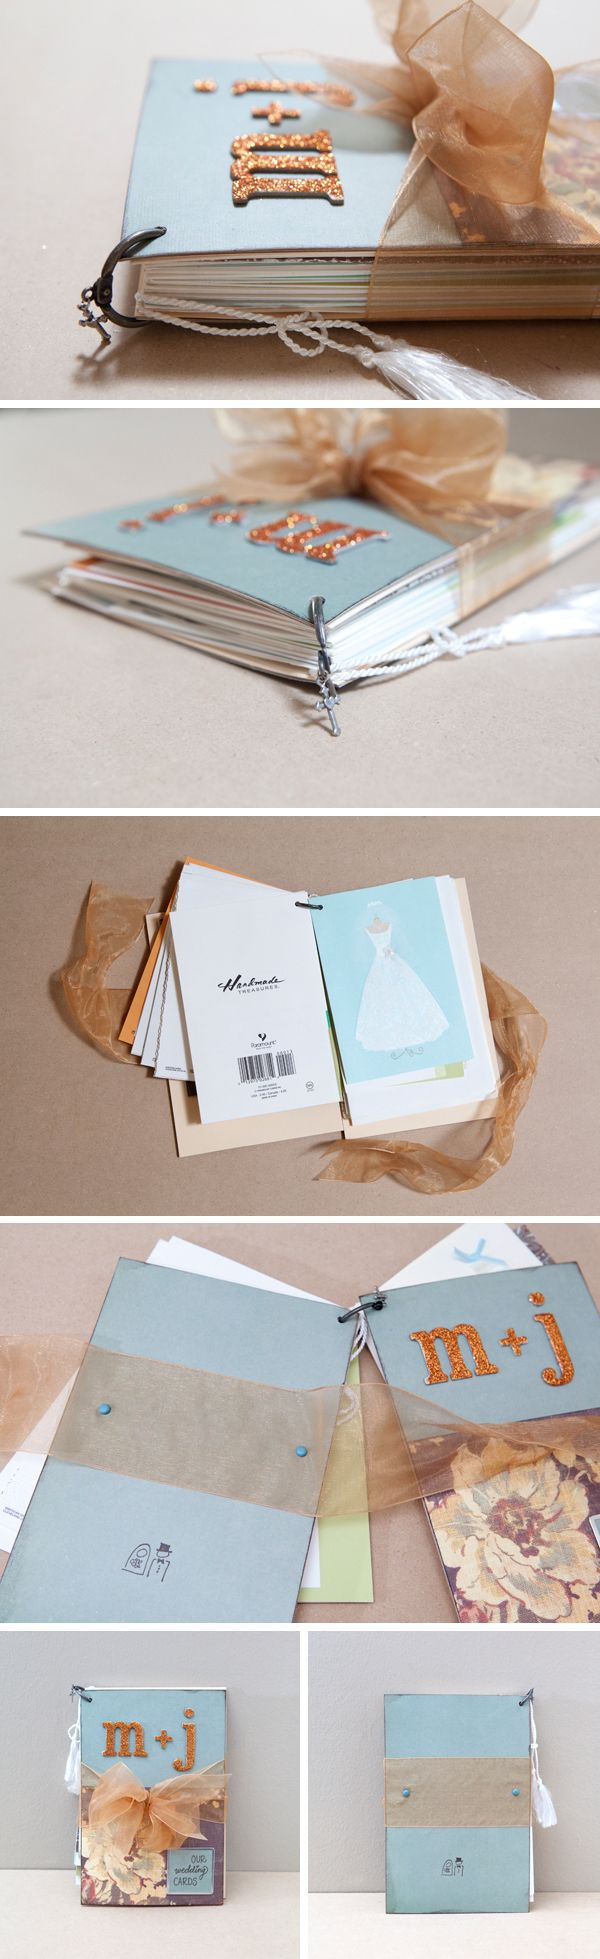 Make a Book with all your wedding cards!